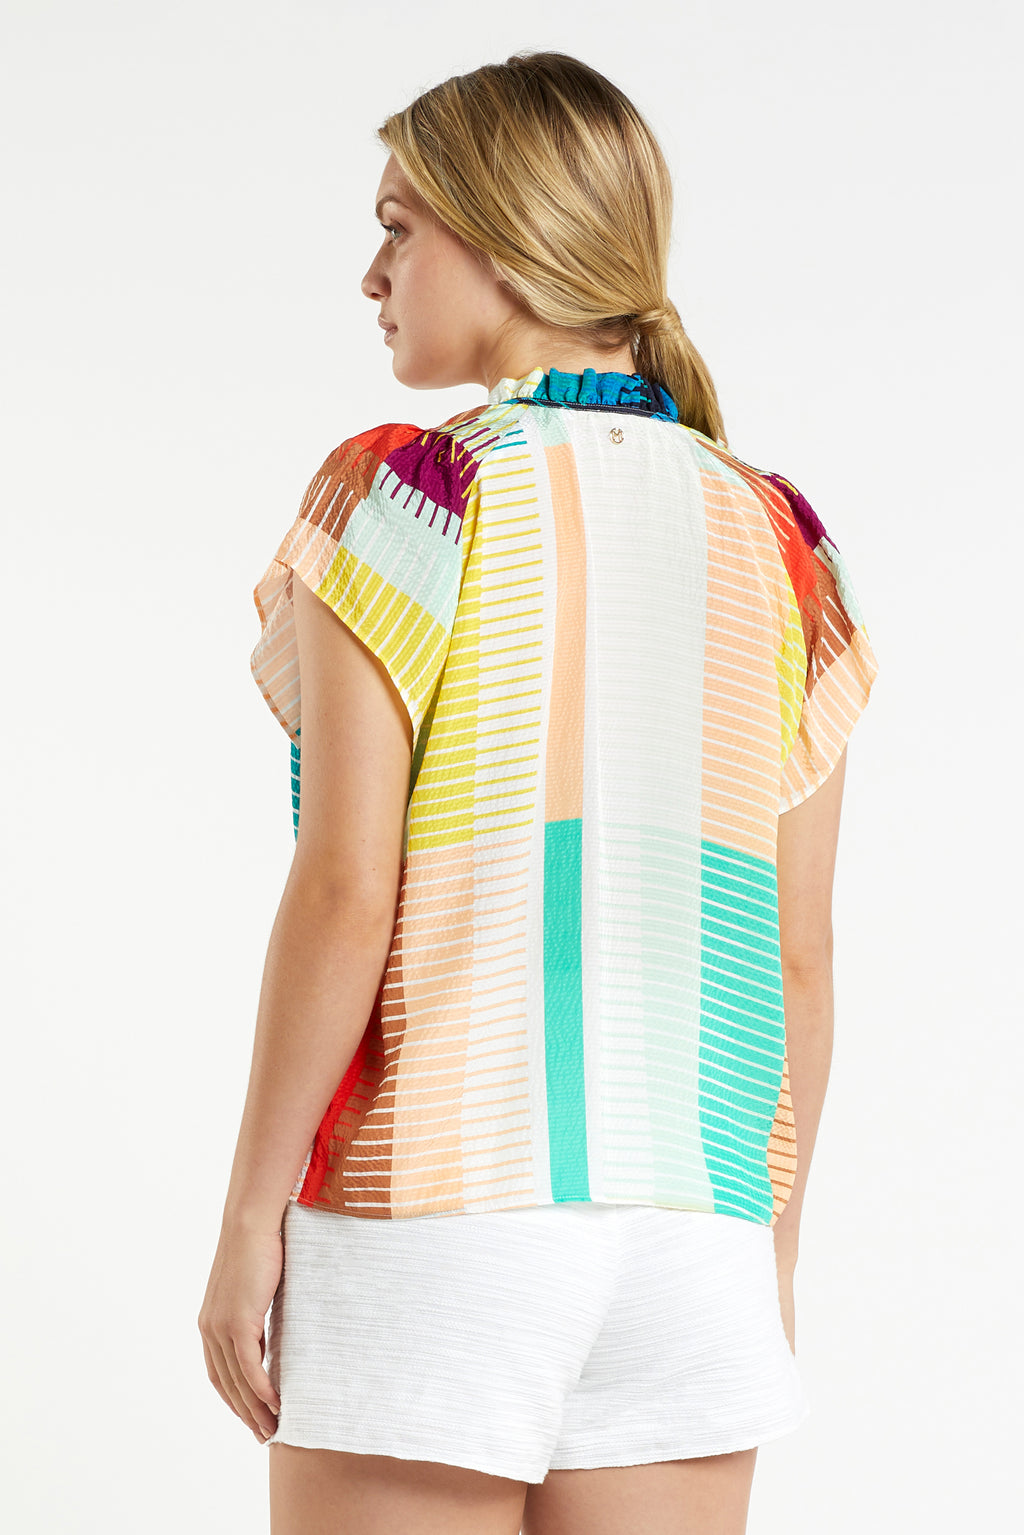 Model wearing short sleeve raglan blouse in multi colored geometric print with white shorts, back view.